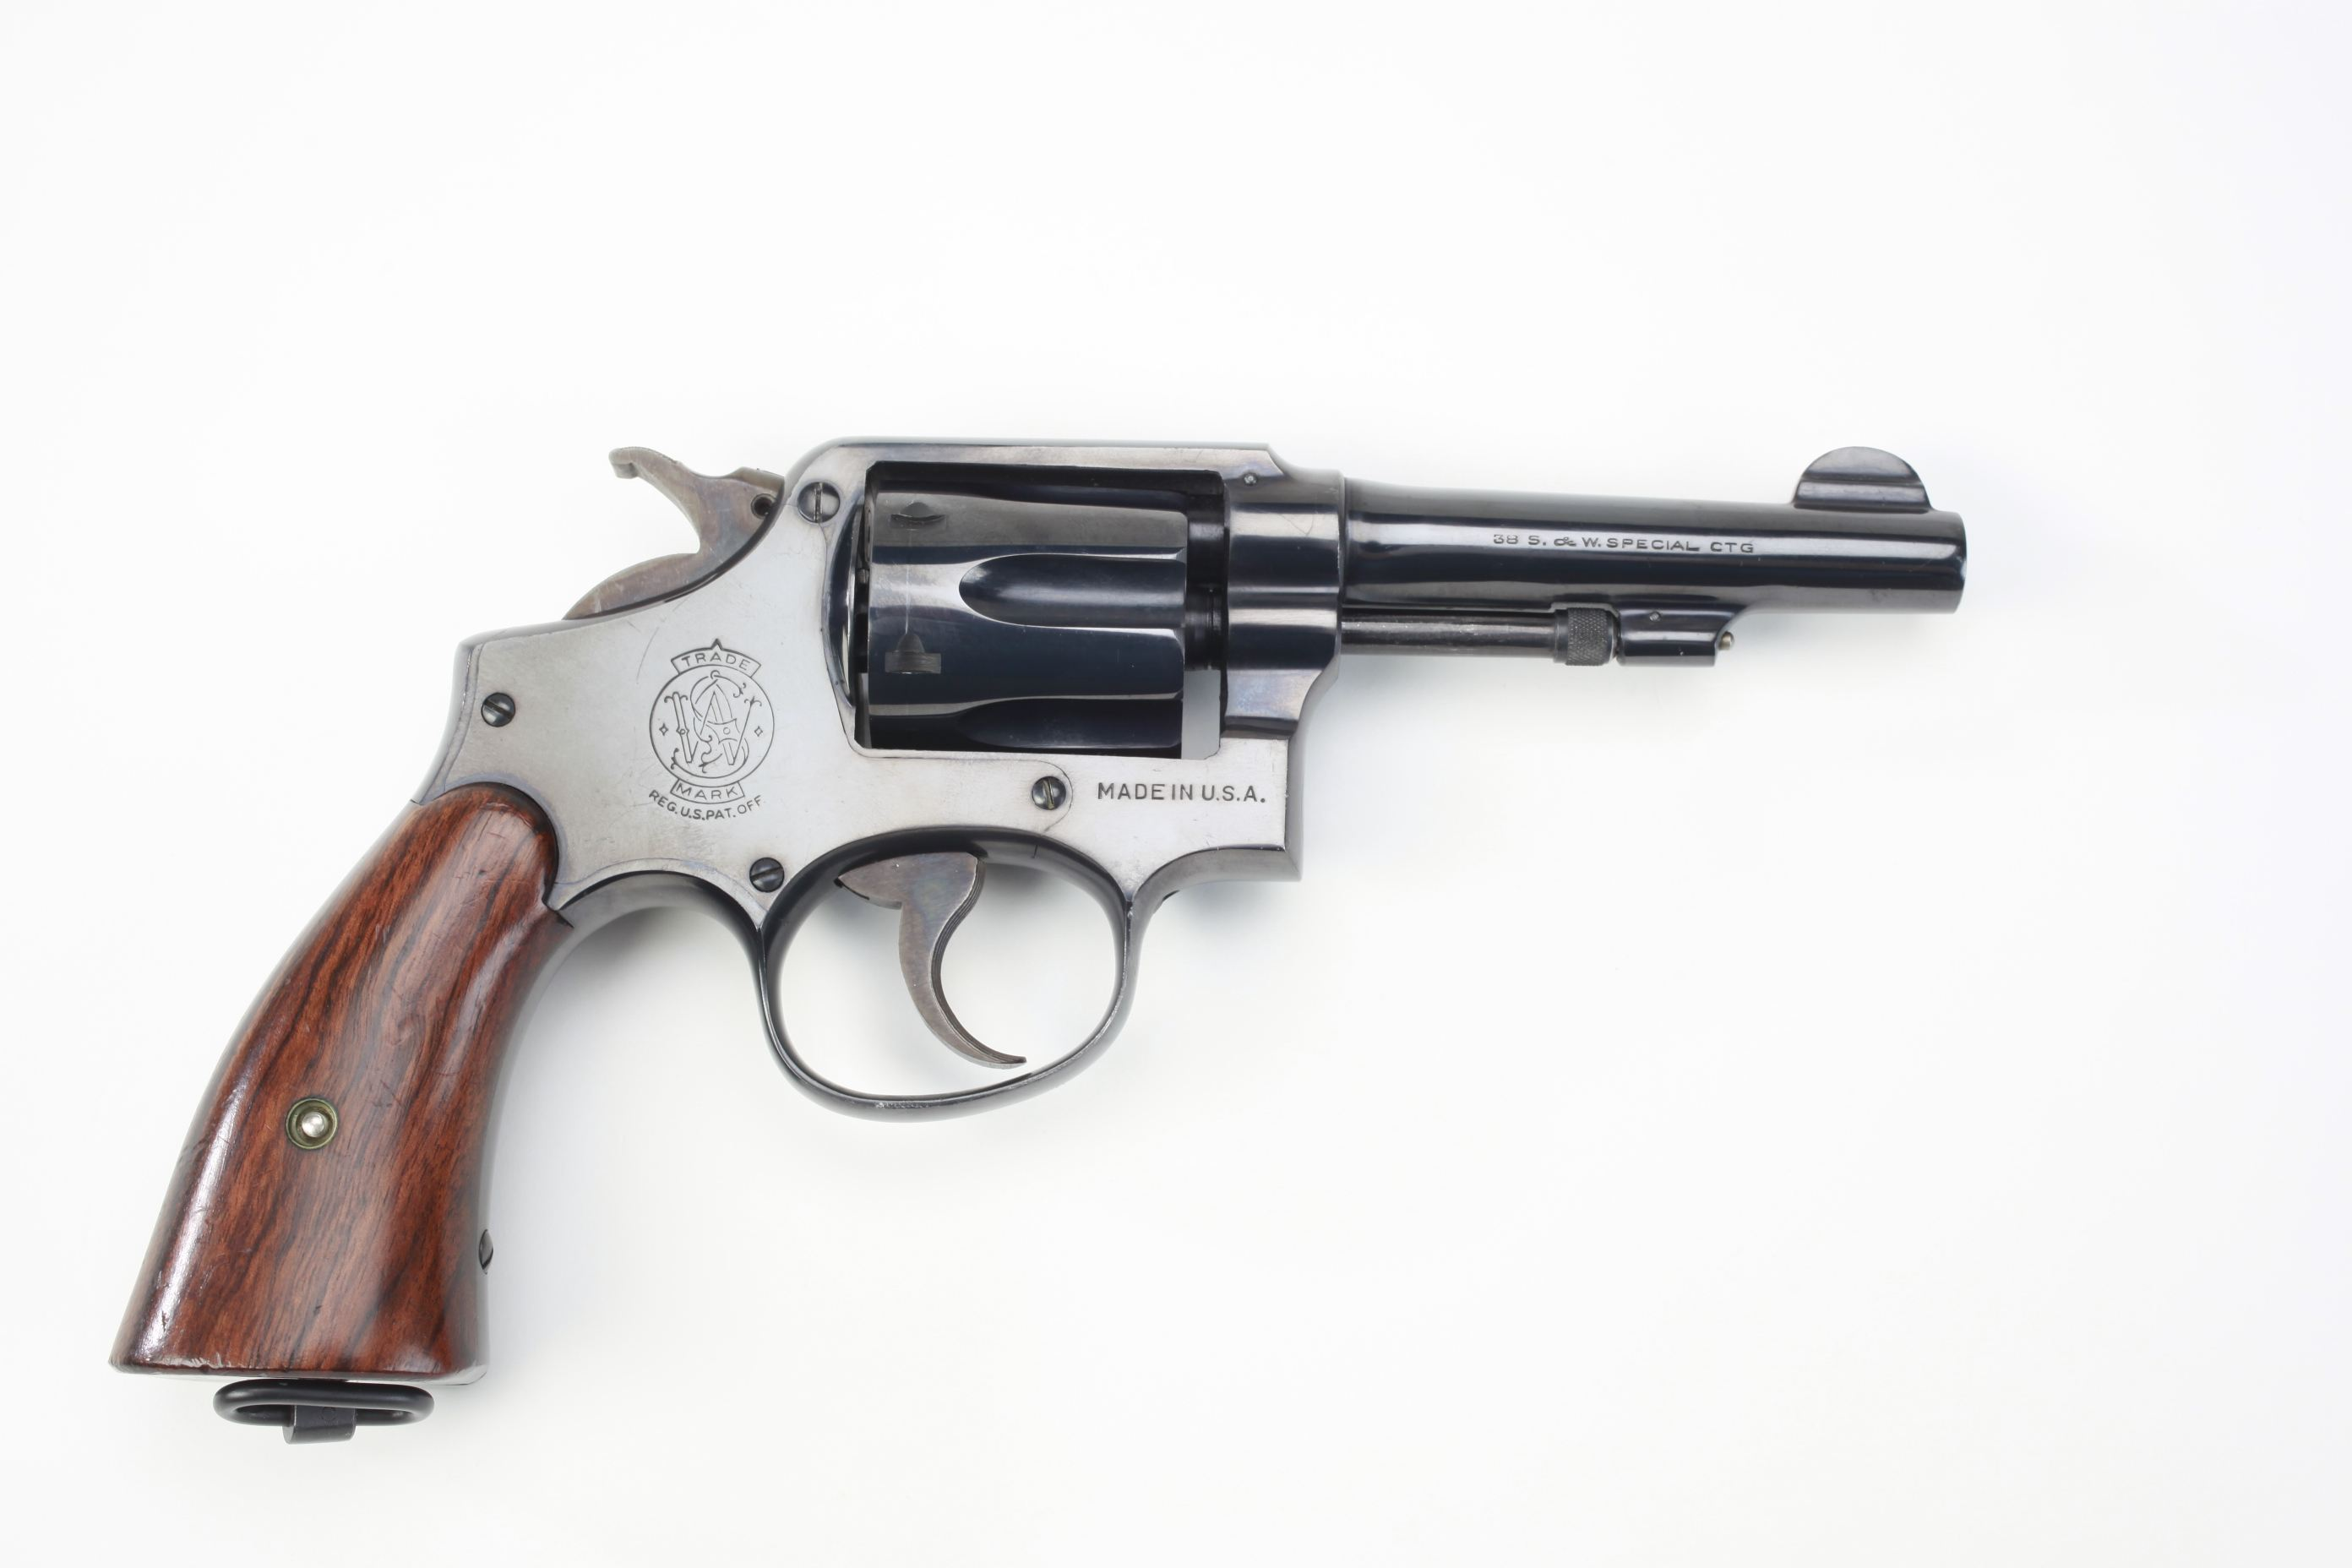 U.S. Smith & Wesson Victory Revolver